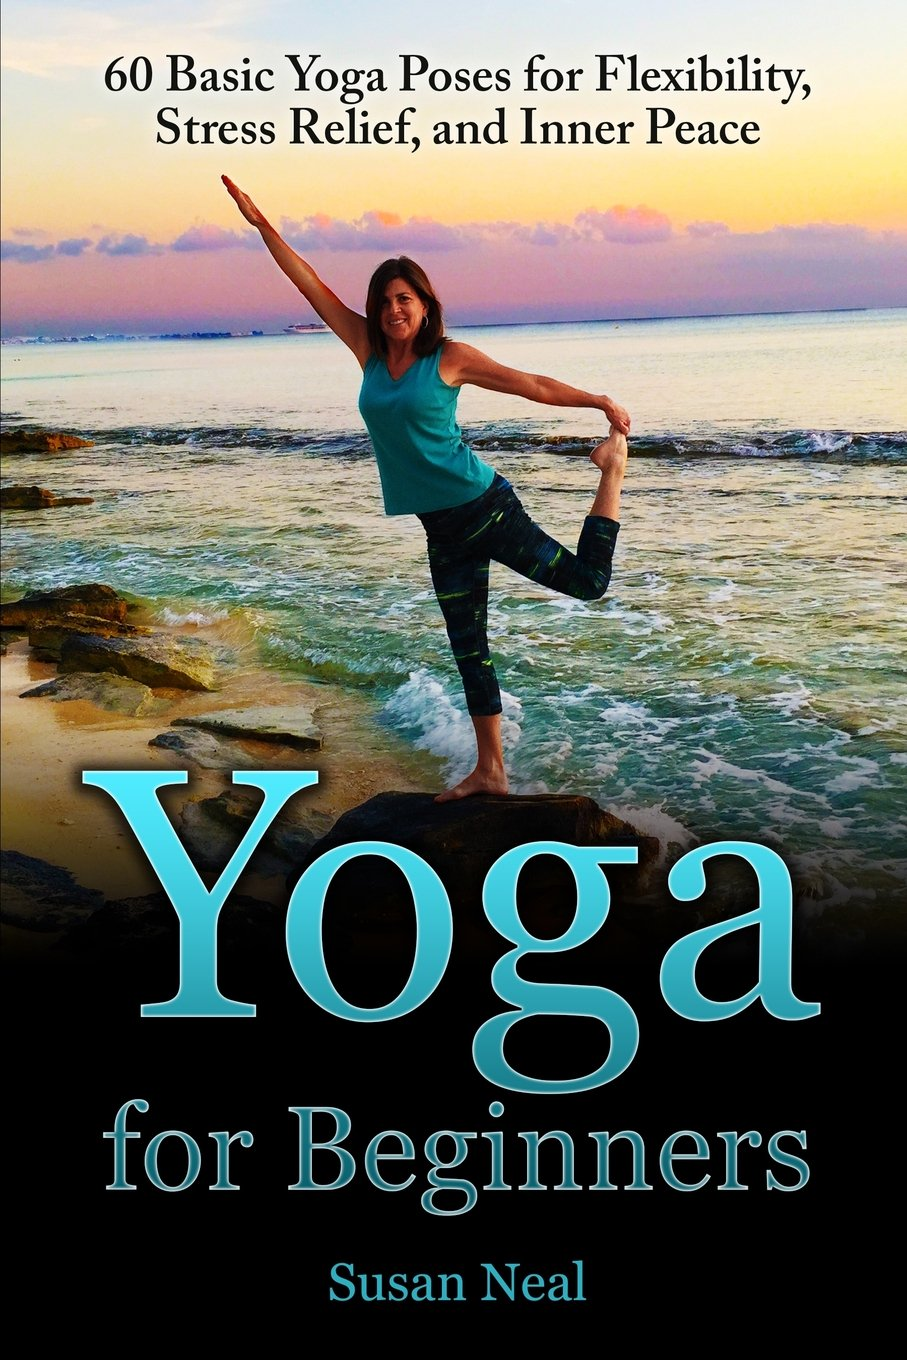 Yoga For Beginners 60 Basic Poses Flexibility Stress Relief And Inner Peace Susan Neal 9780997763638 Amazon Books